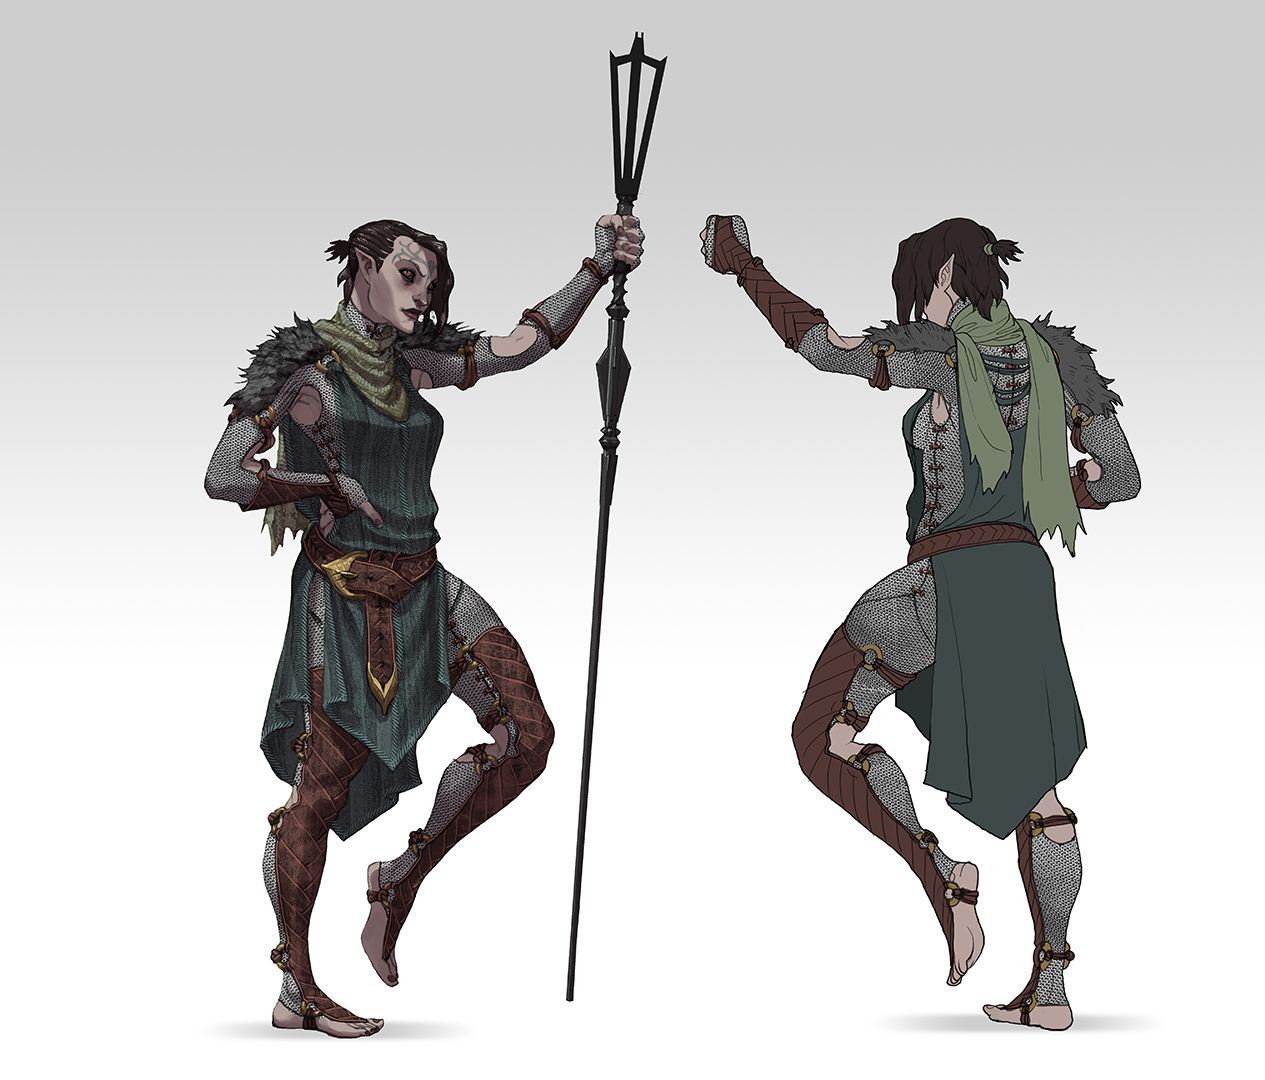 Dragon Age Inquisition Character Design Ideas : Matt rhodes concept artist at bioware works on dragon